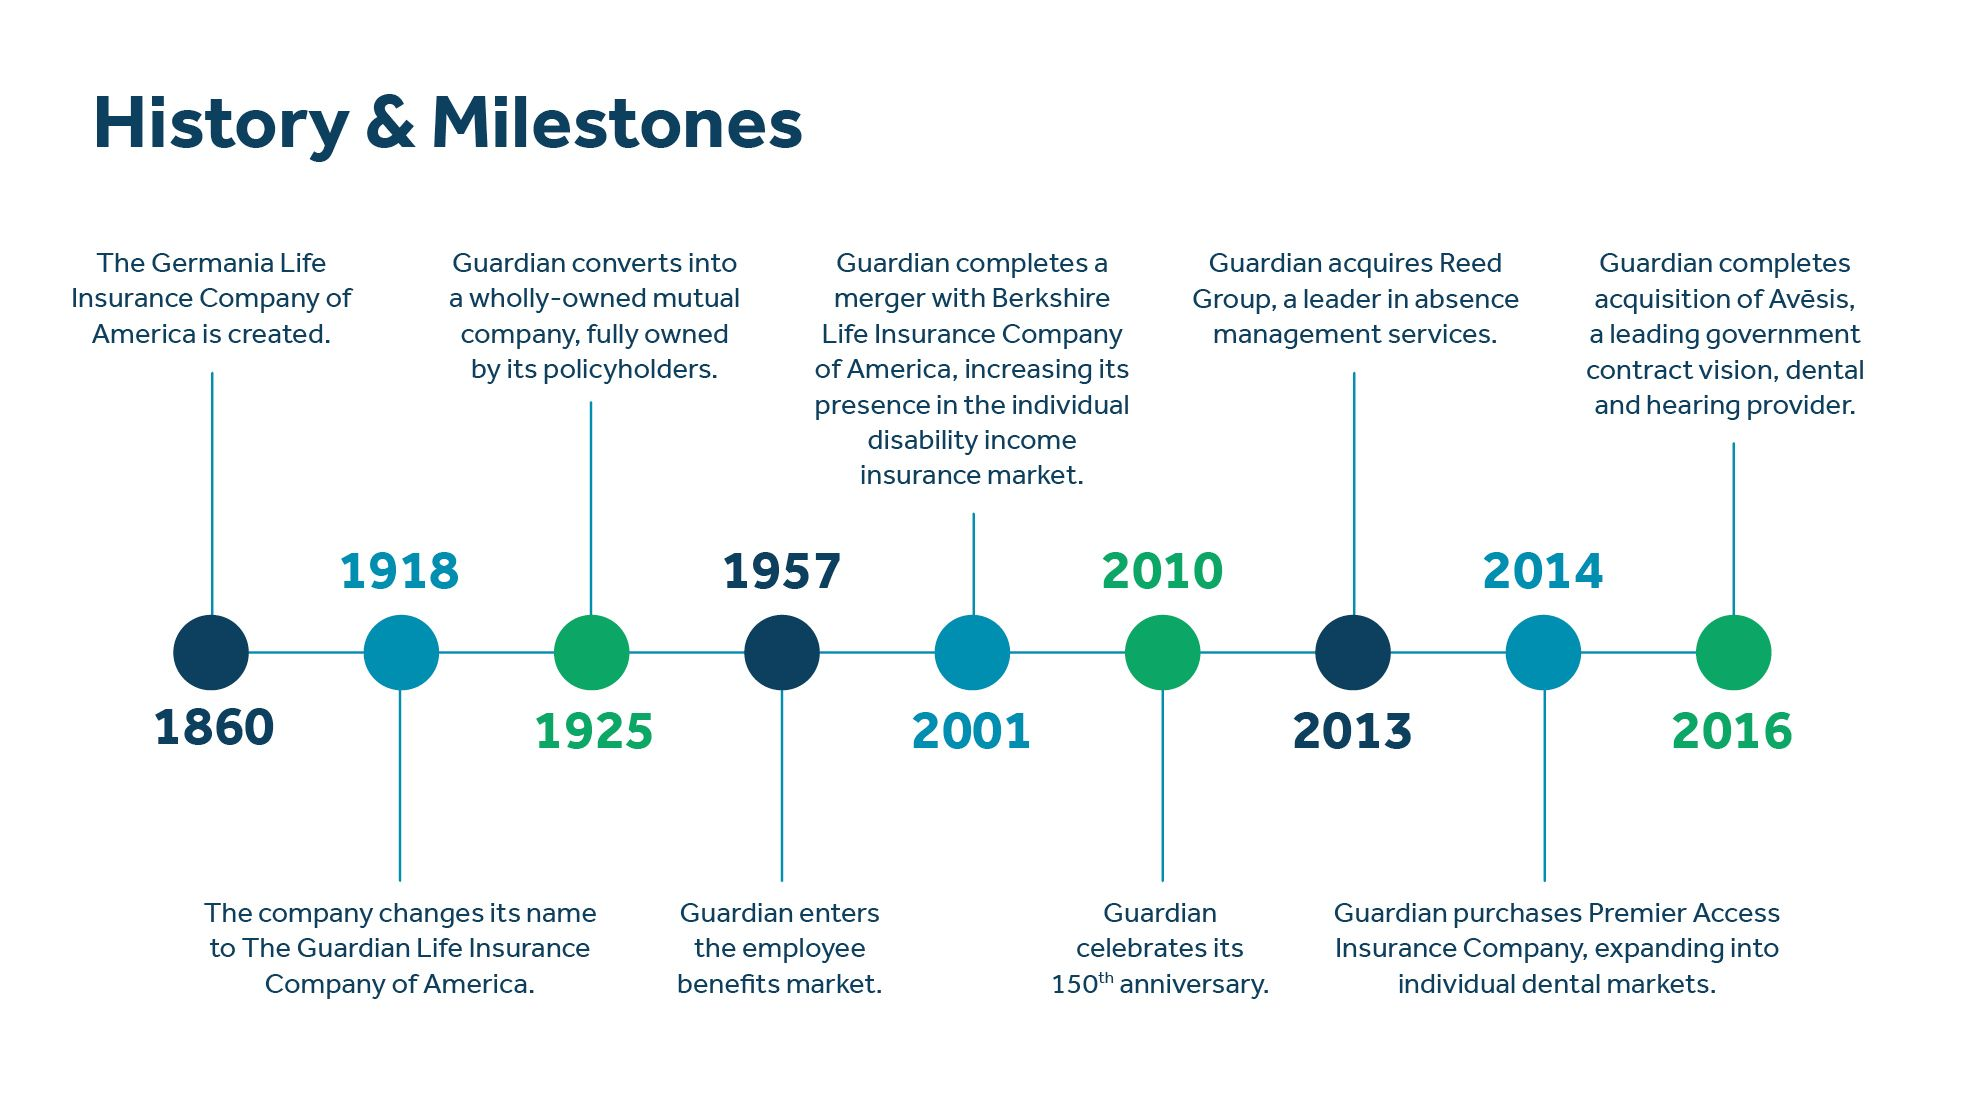 Guardian history and milestones chart